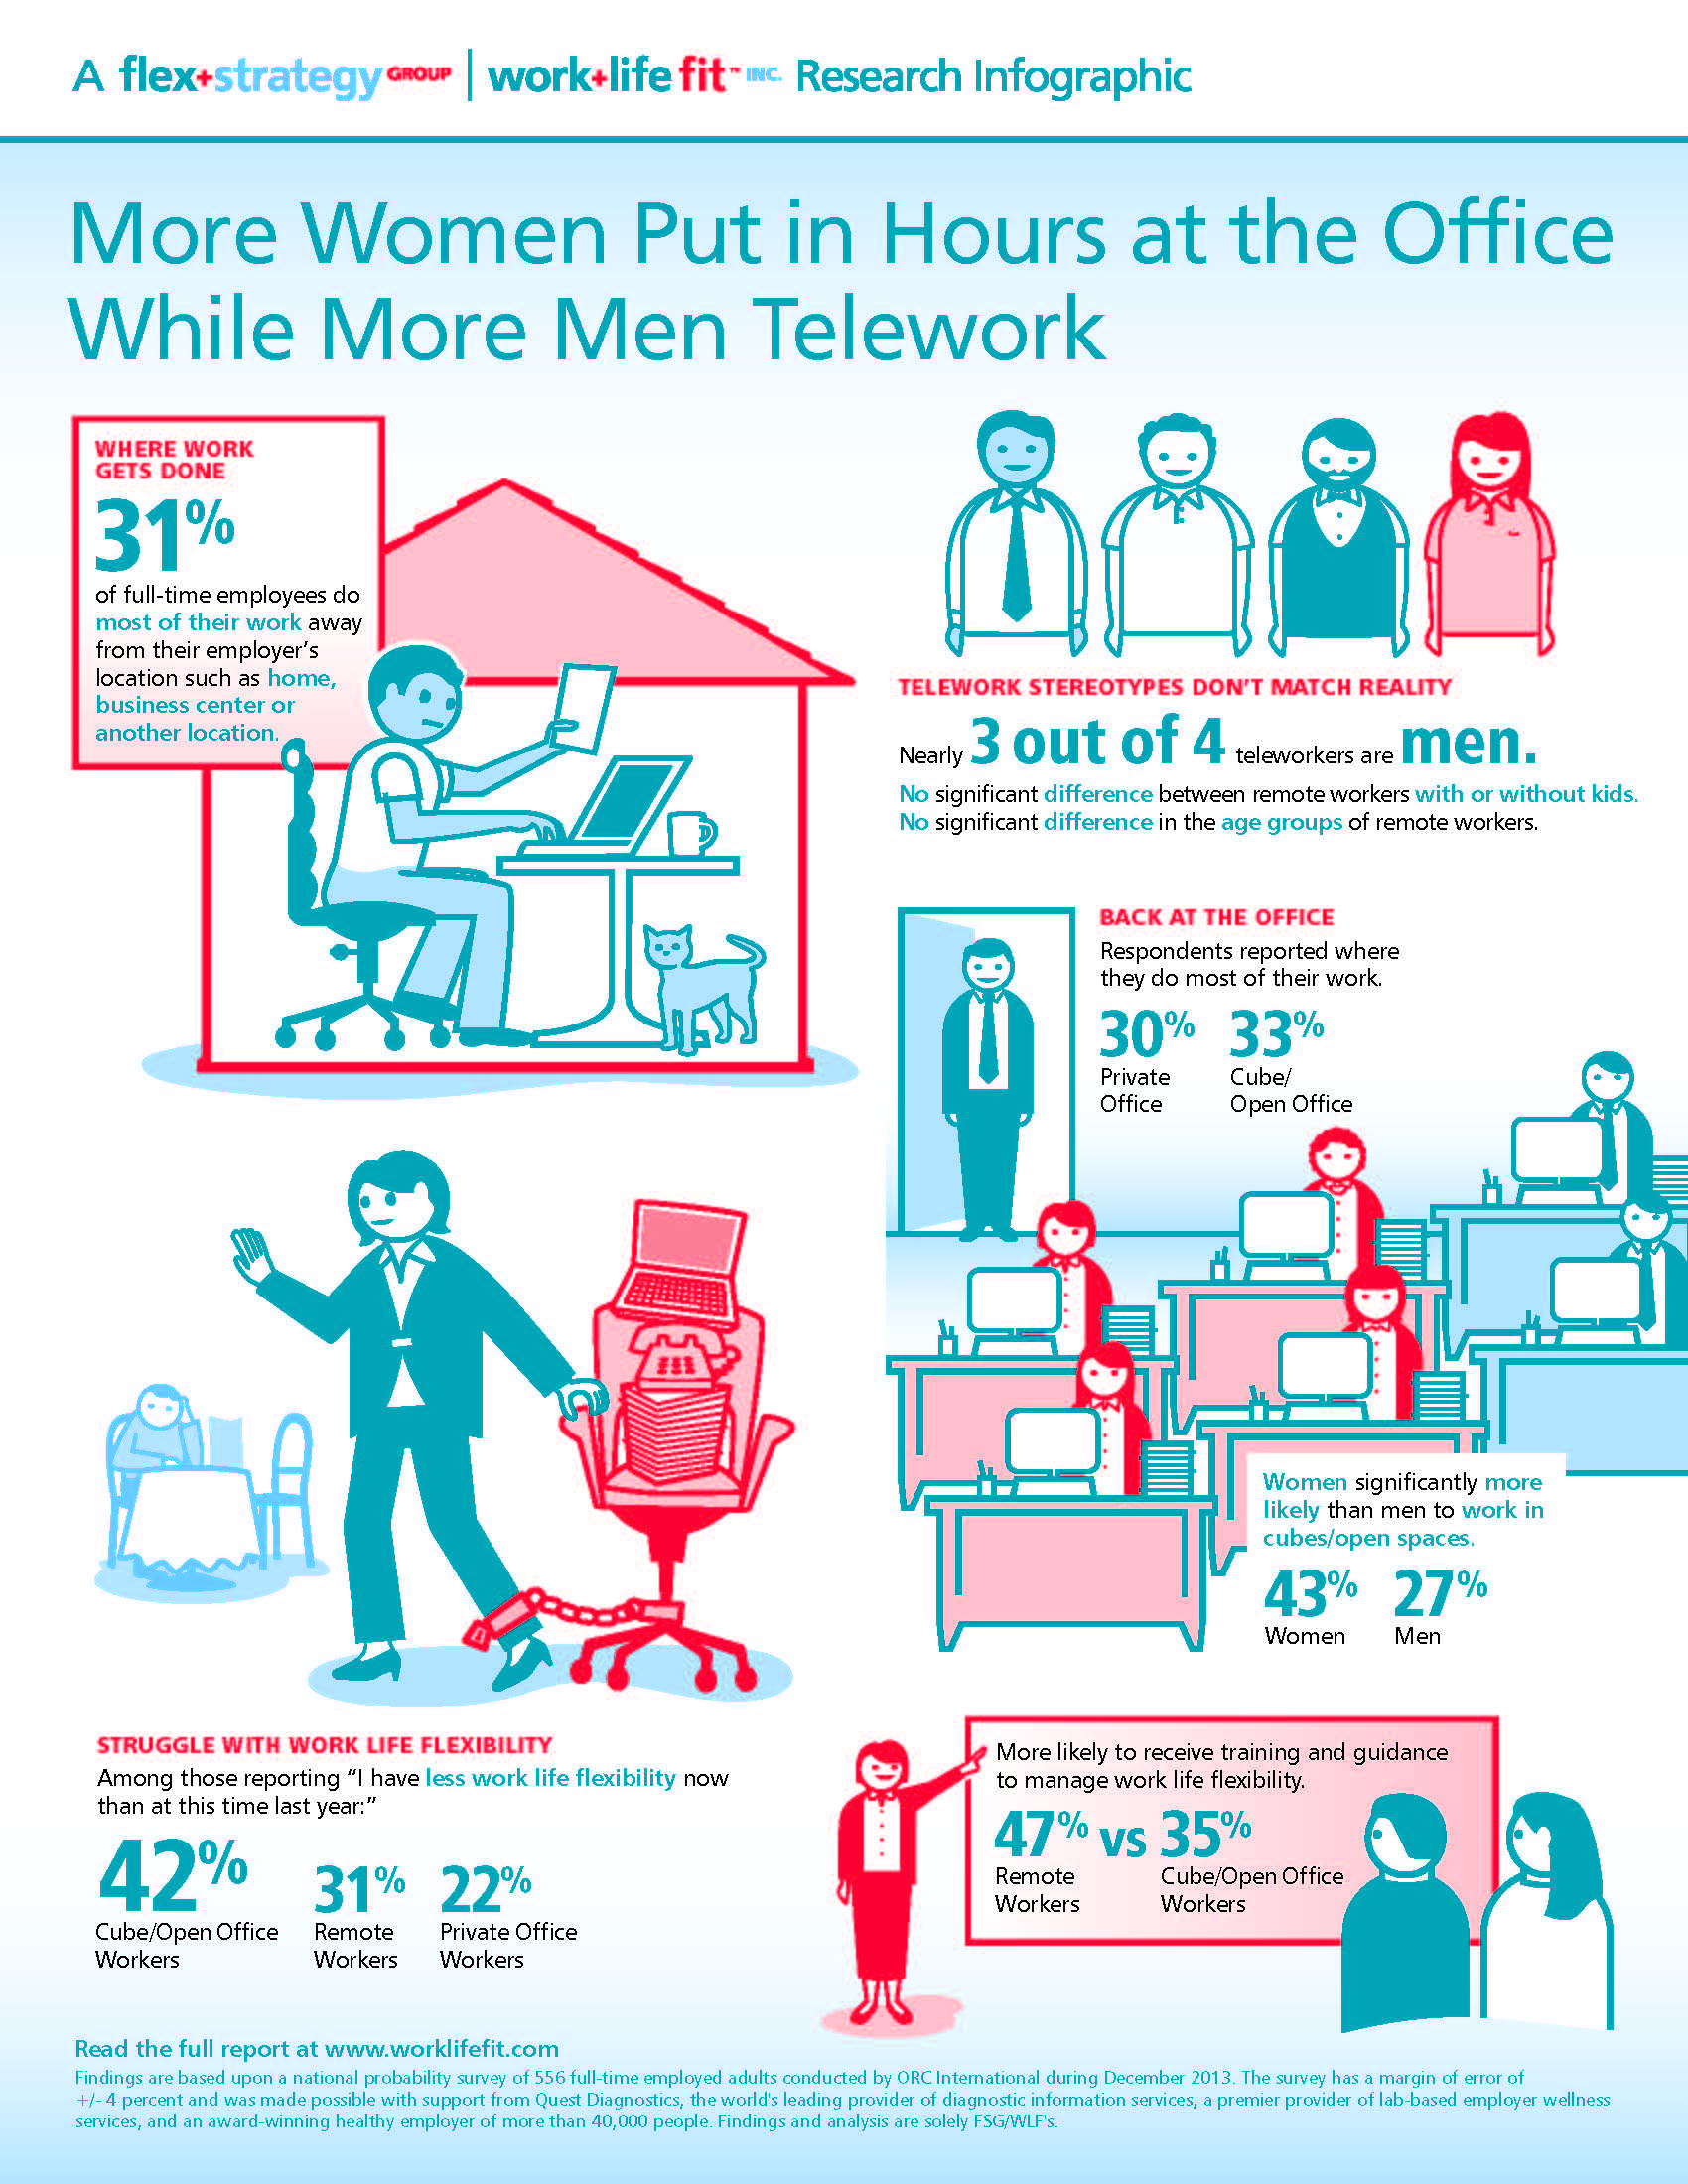 Infographic from Flex+Strategy Group/Work+Life Fit Inc.